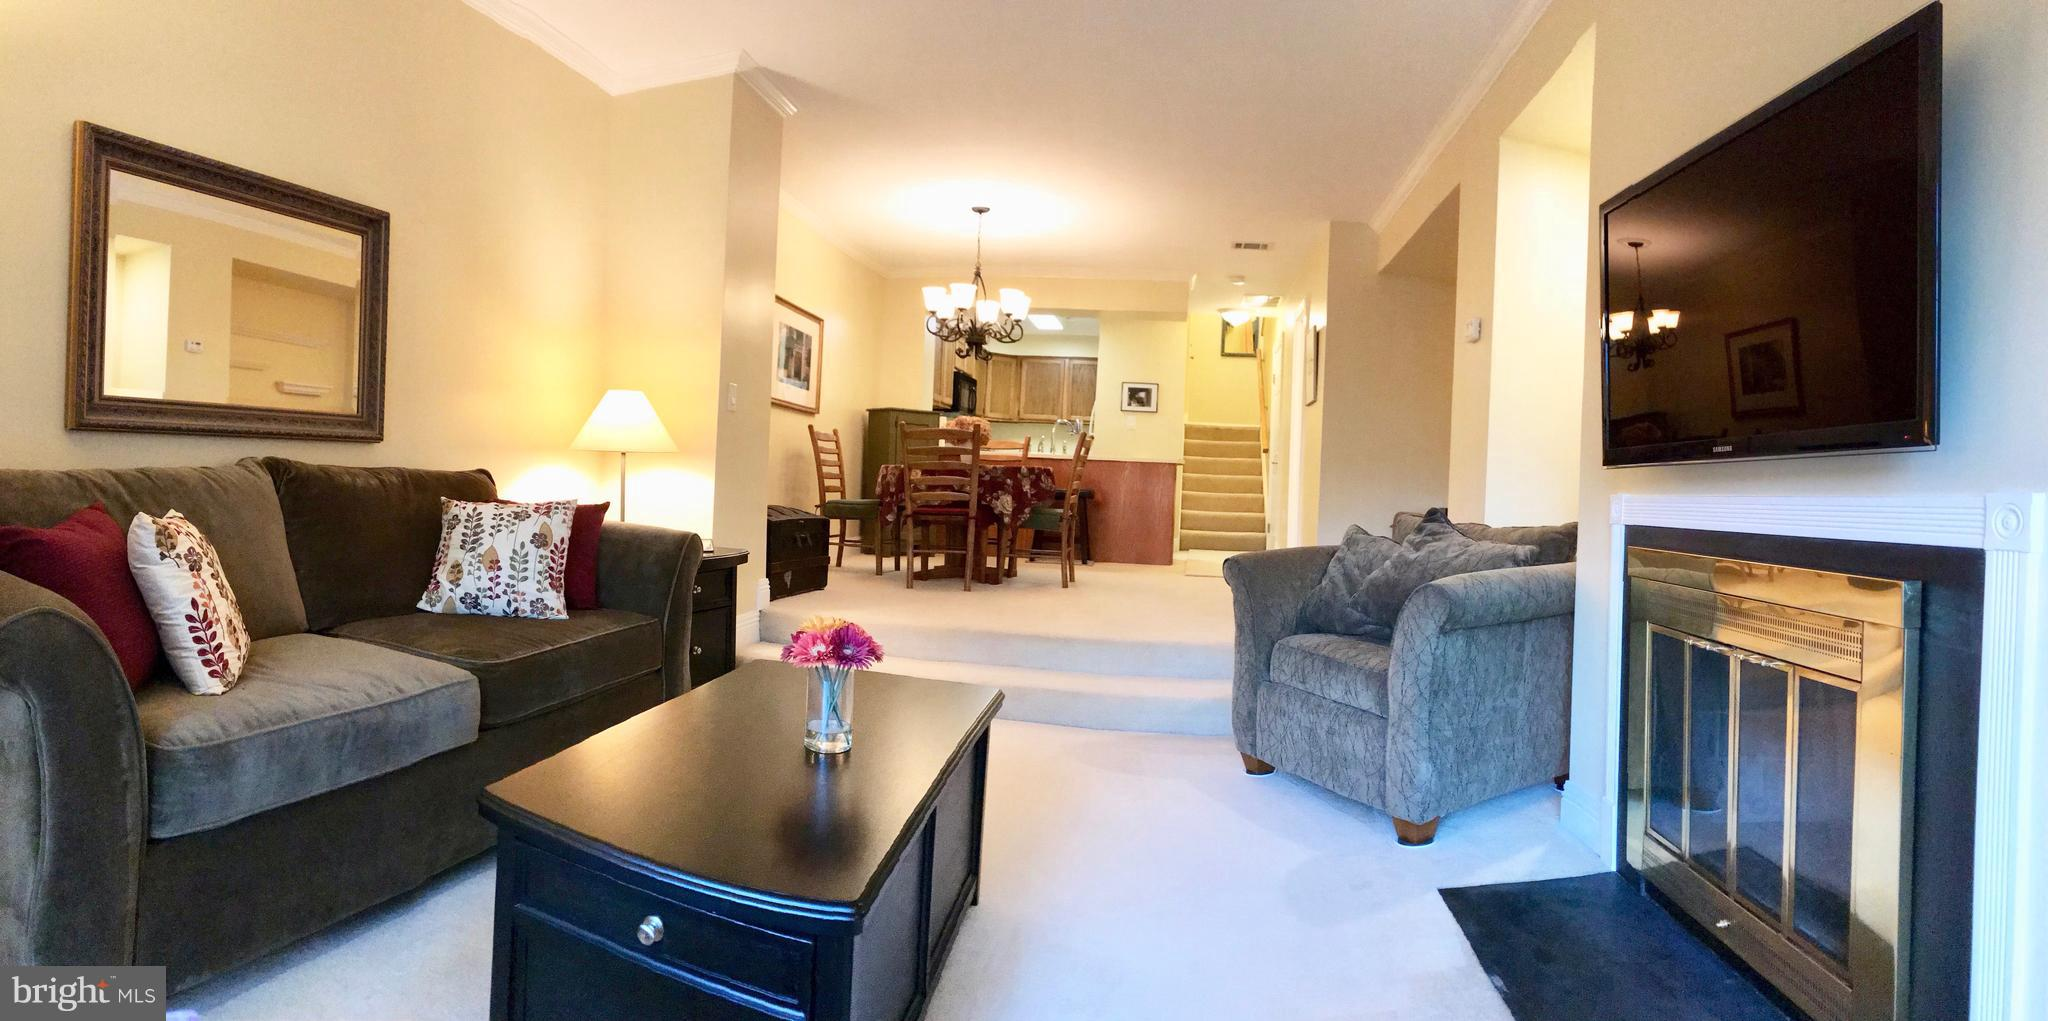 Move-in ready and conveniently located near everything! This ground-level, two-story condo located i